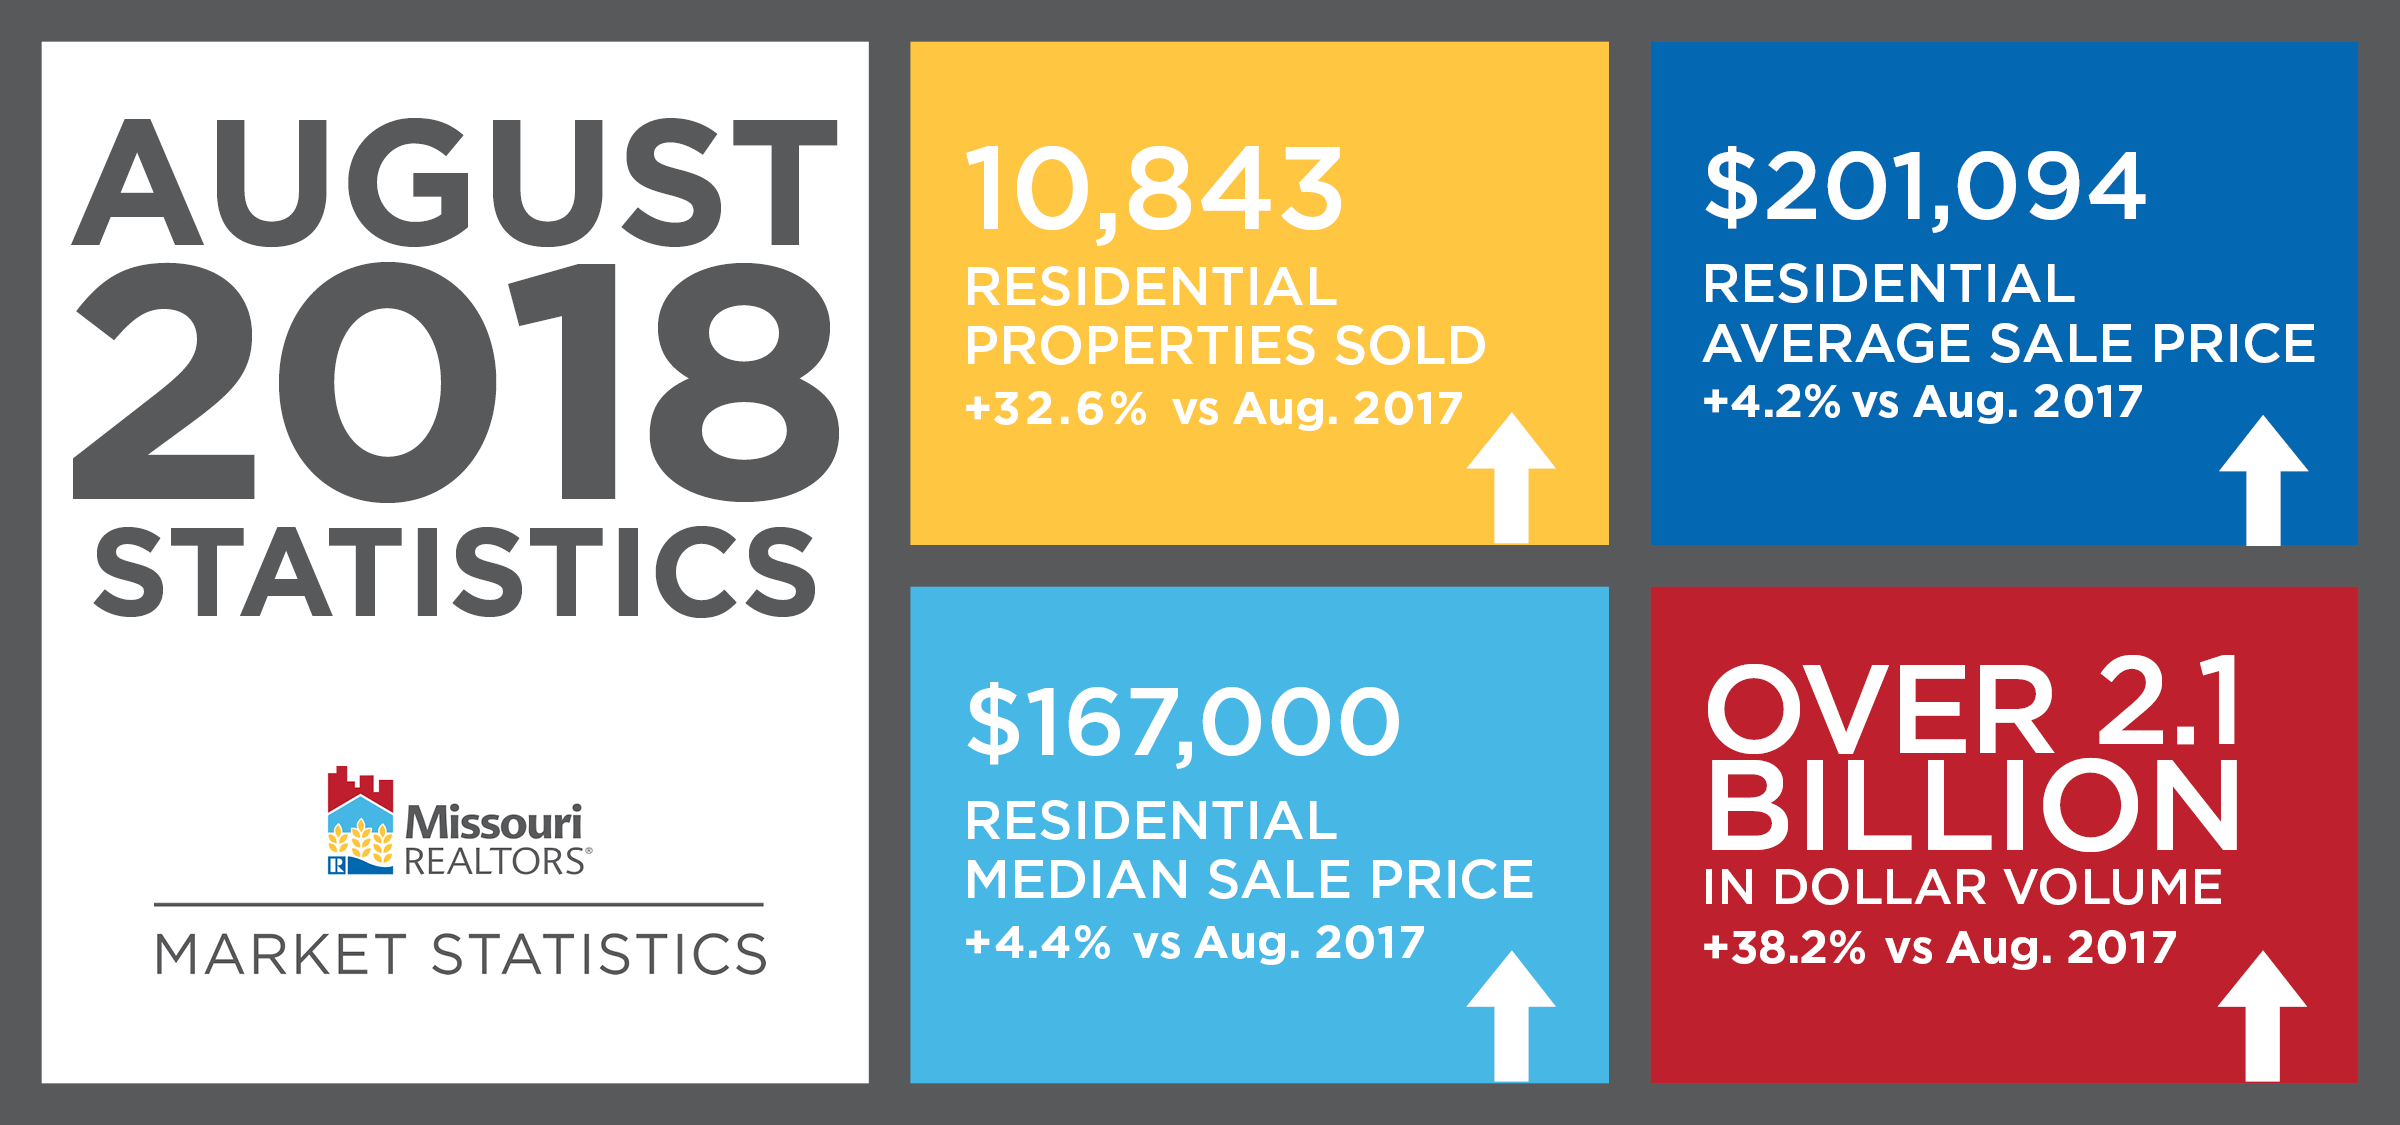 August 2018 Missouri Real Estate Update